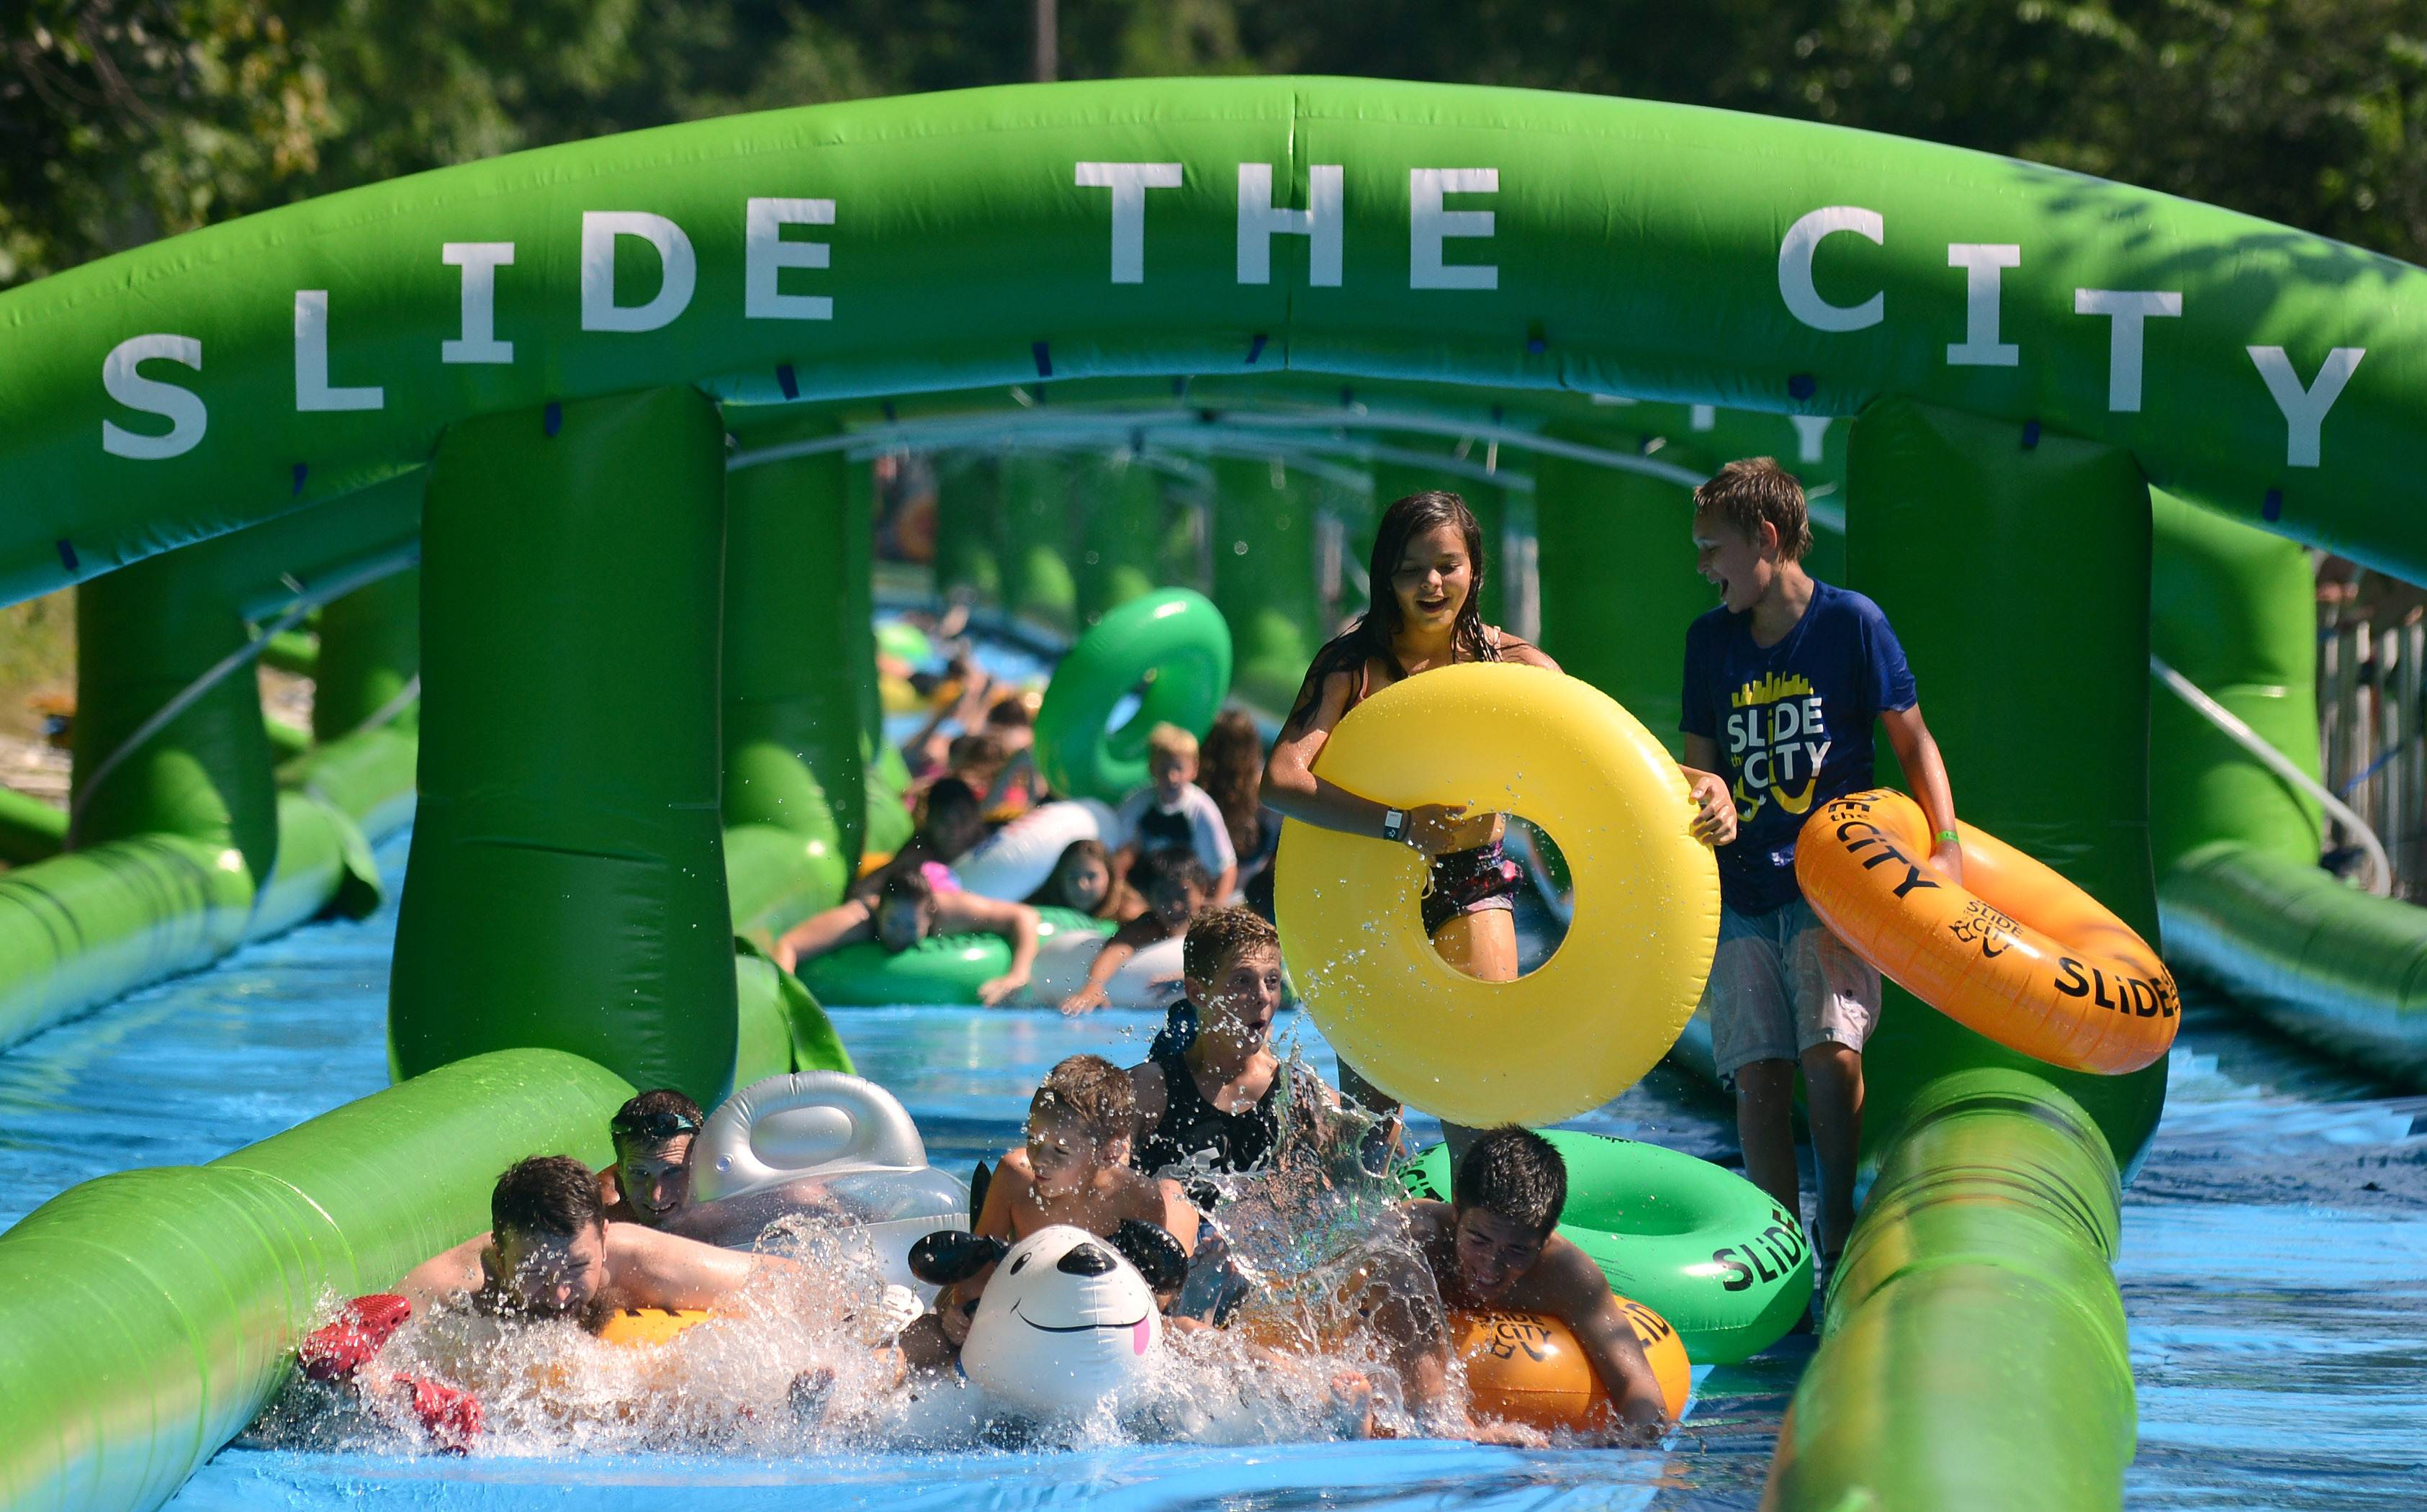 Slide the City installs a temporary 1000-foot water slide in Carpentersville on Saturday, July 23, and then in Chicago on July 30.